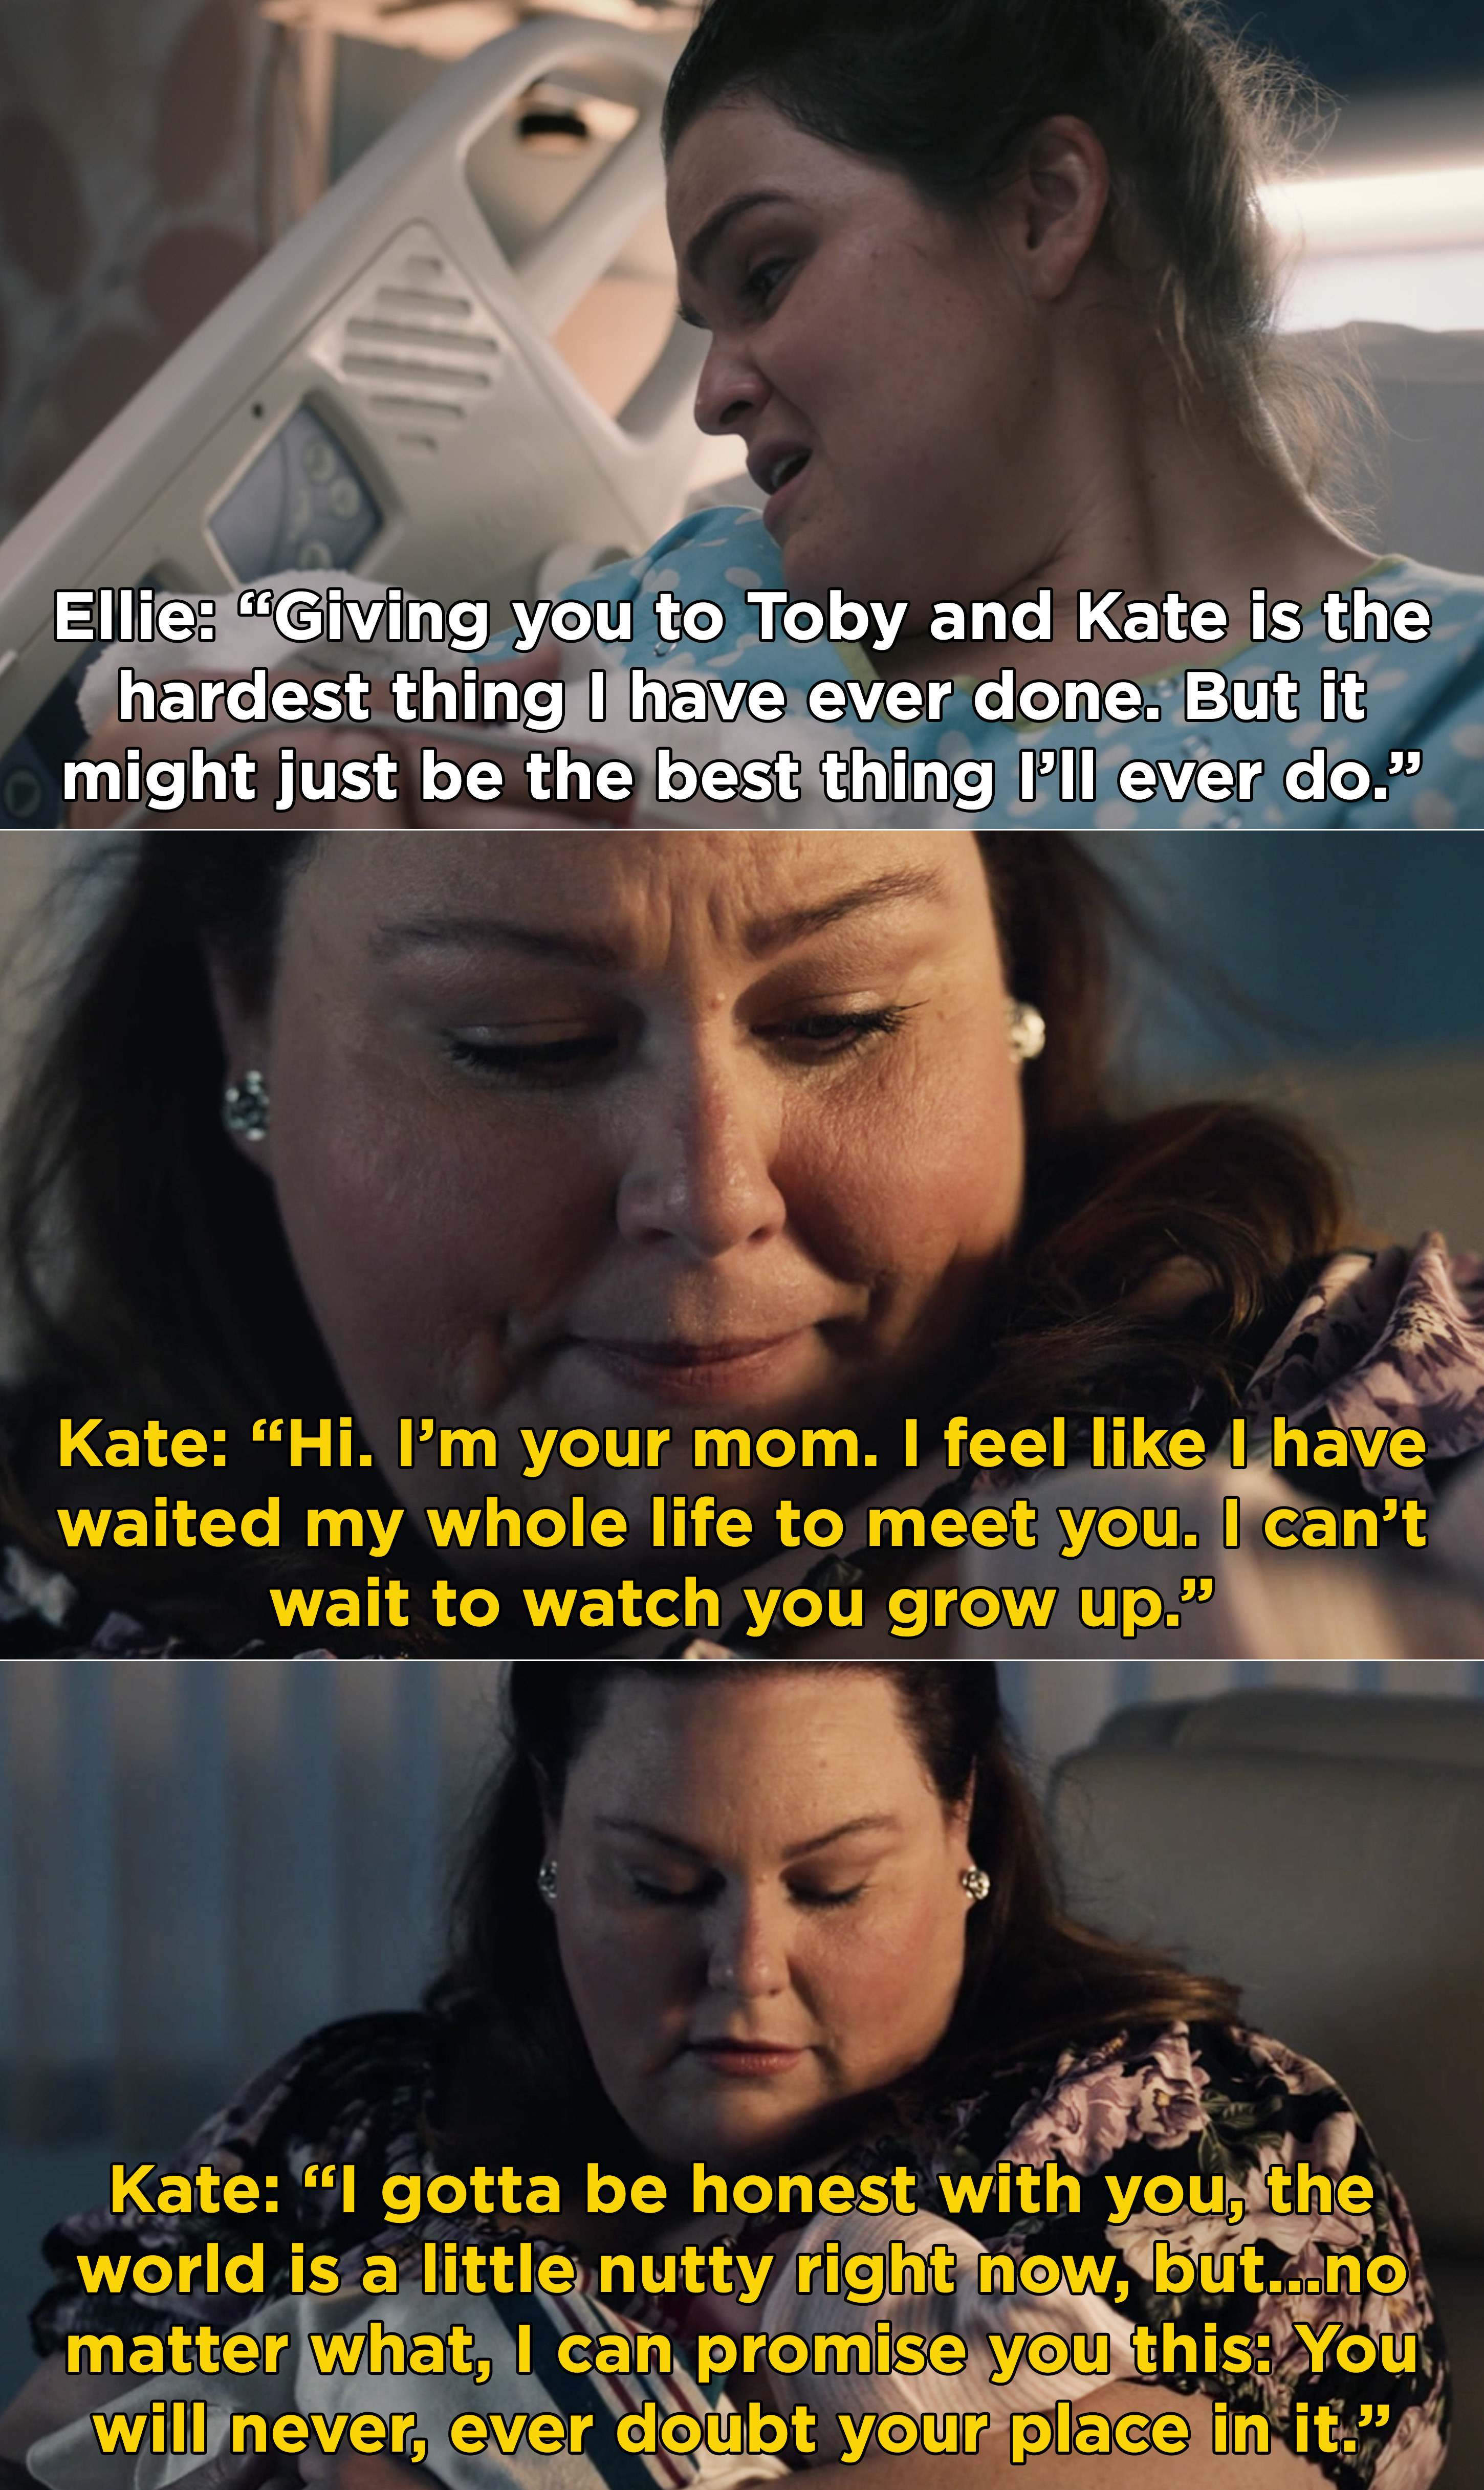 Ellie telling Hailey that giving her to Toby and Kate is the best thing she's ever done, and Kate telling Hailey that she has waiting her whole life to meet her